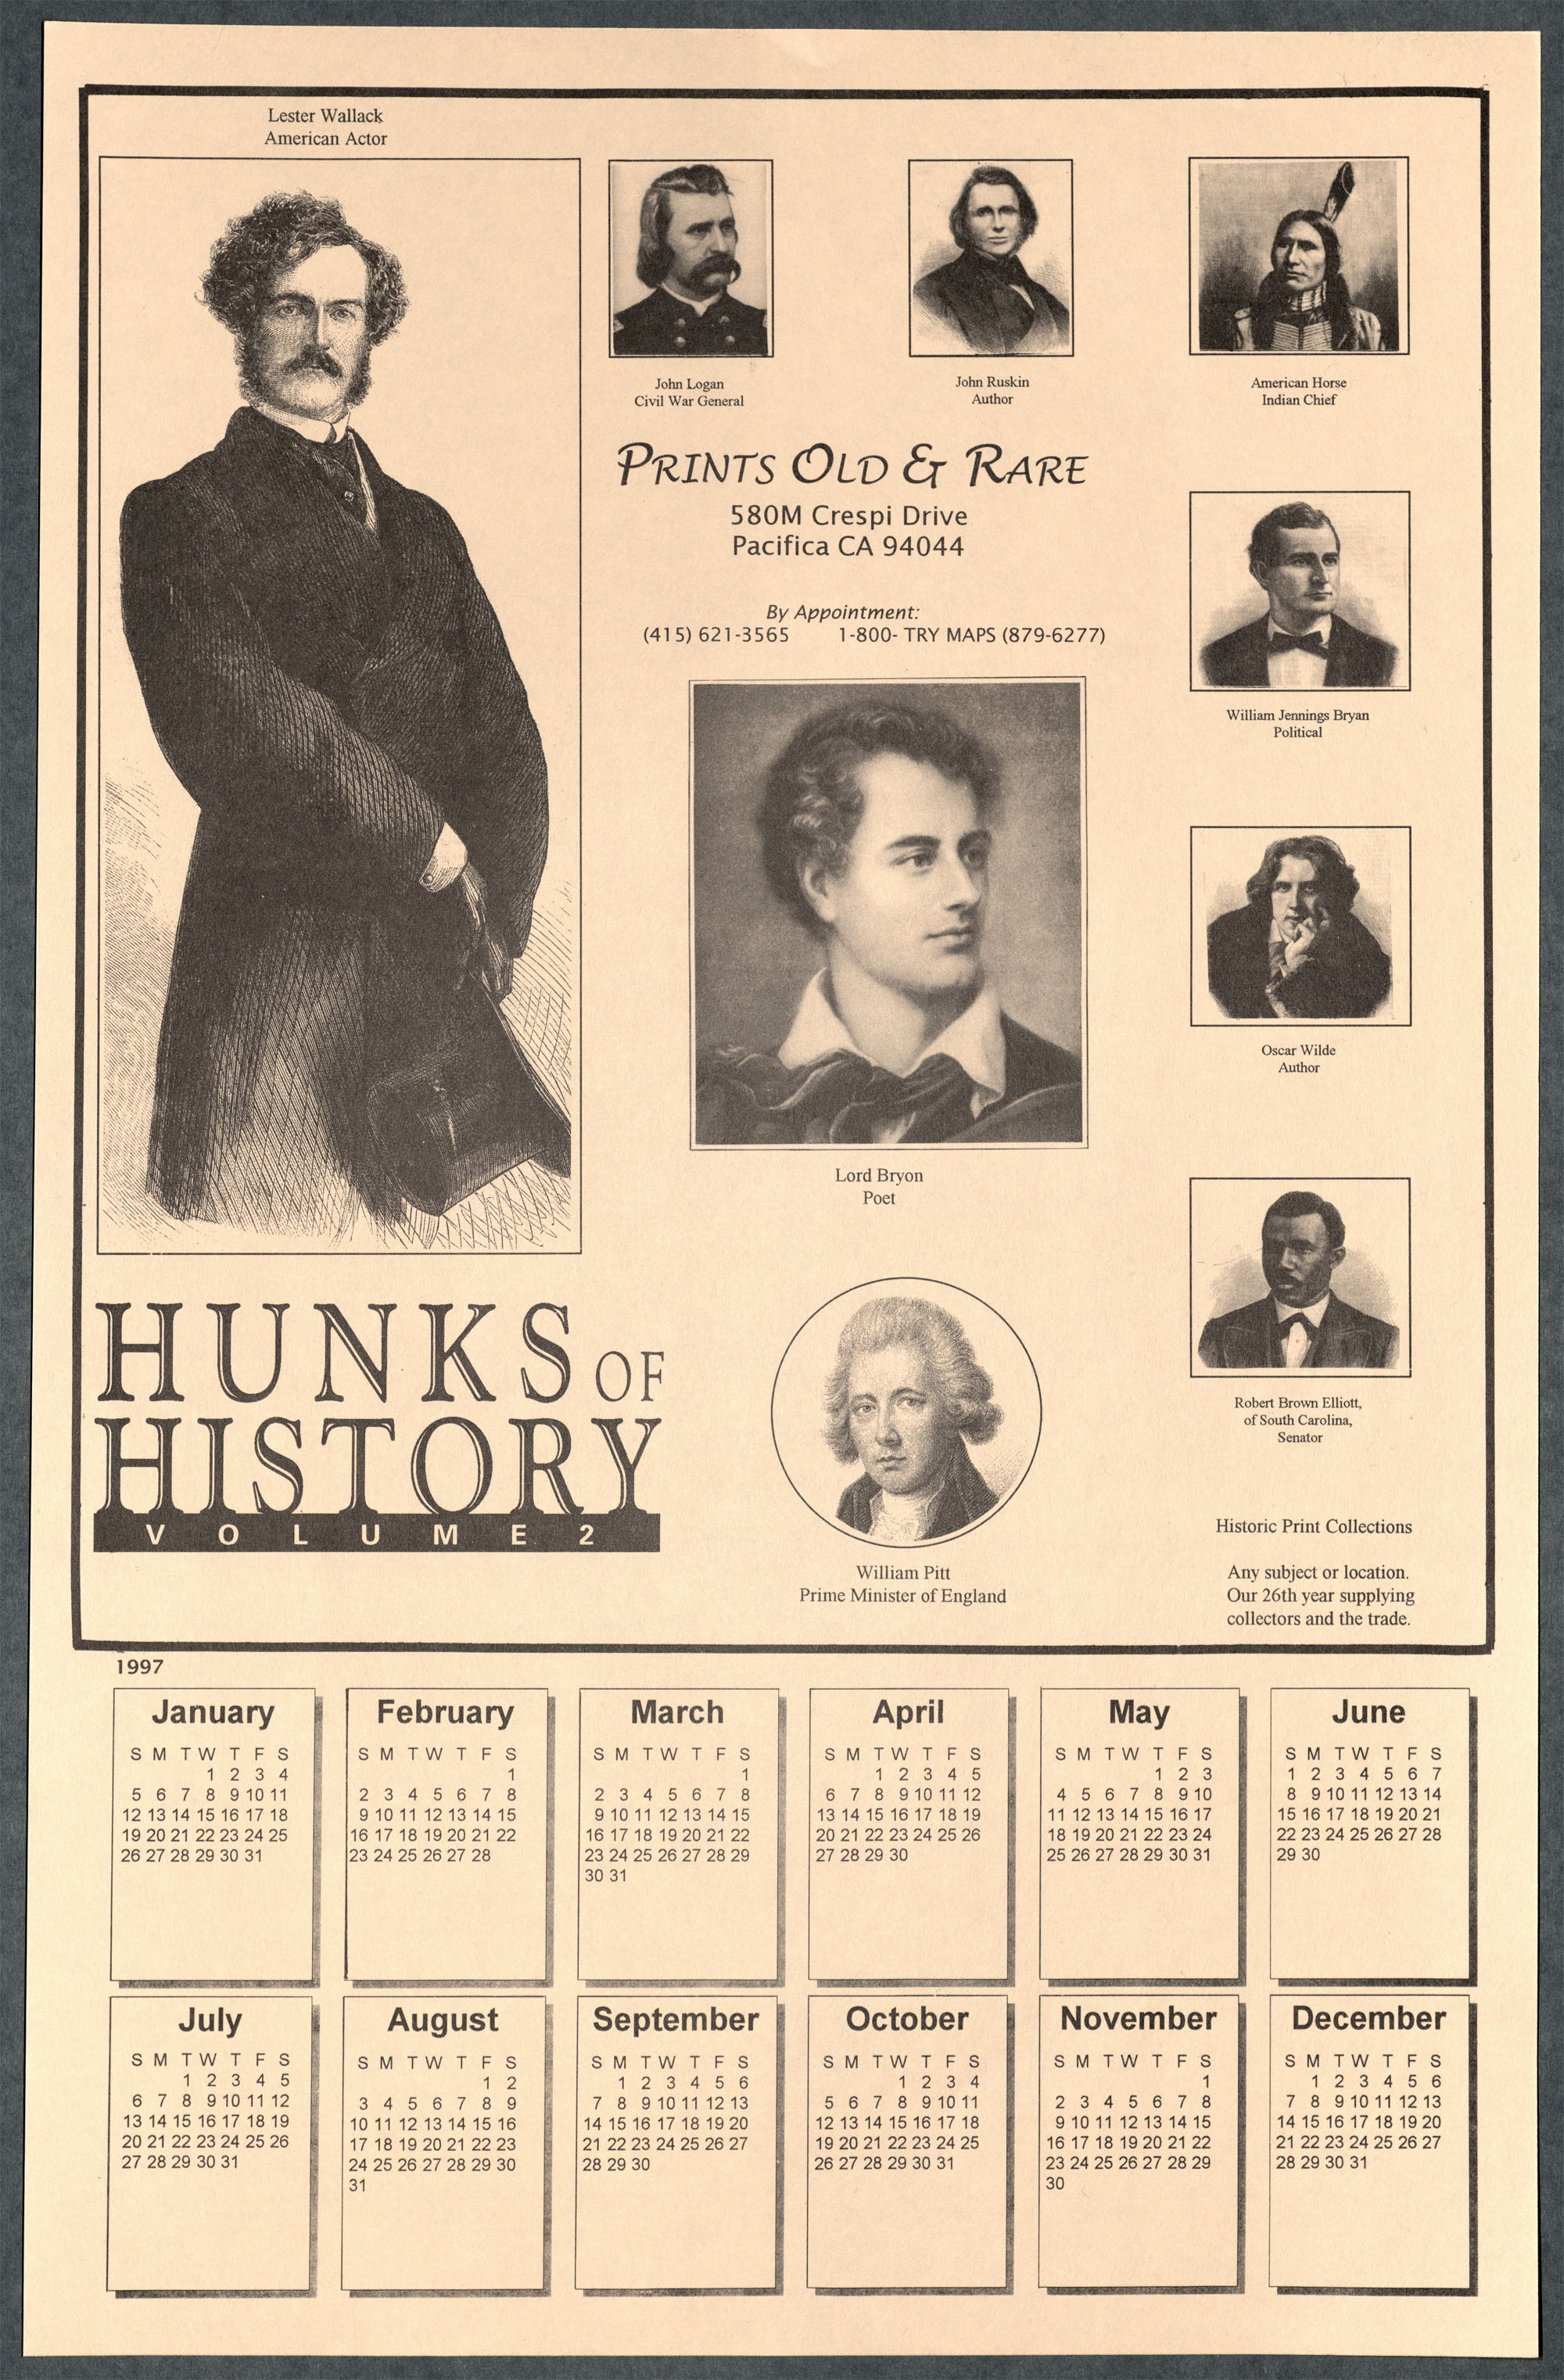 Hunks of History Calendar Advertisement from Prints Old and Rare